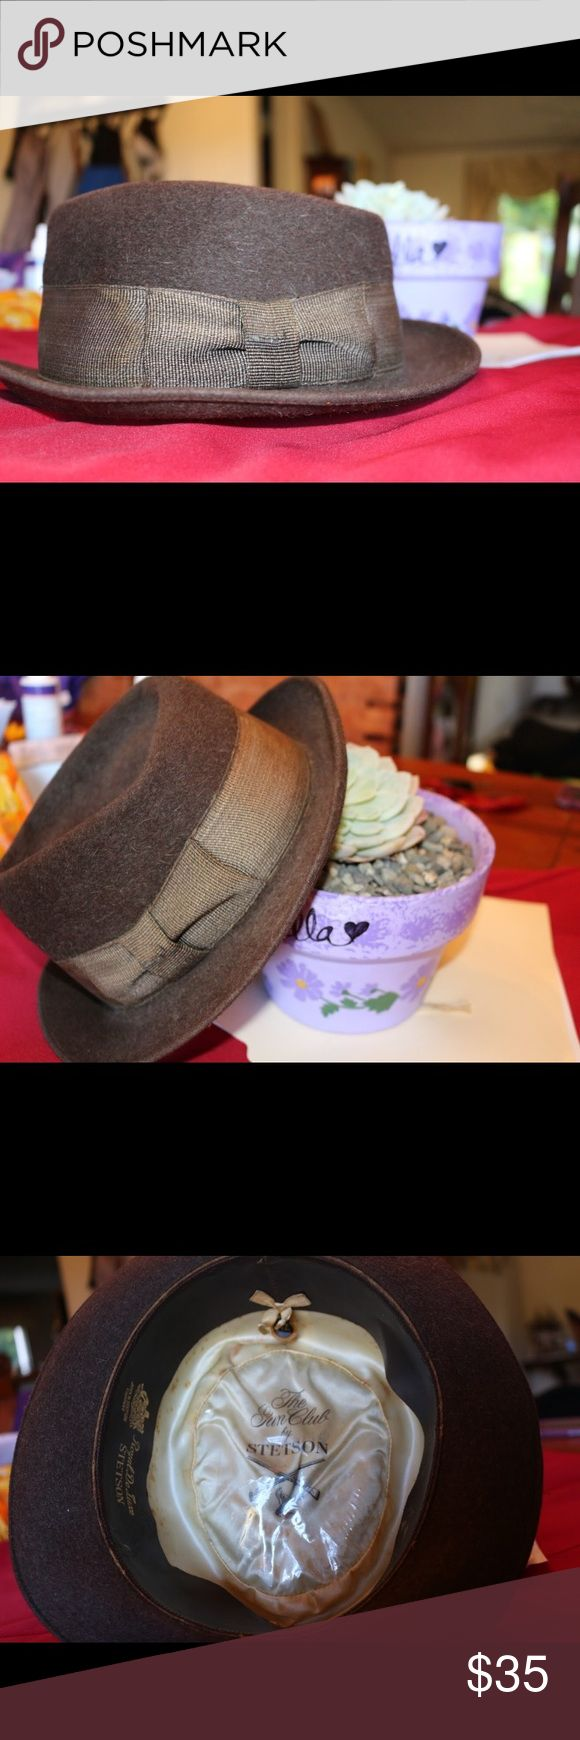 Stetson fedora ! A classic 😍 Brown wool Stetson fedora, totally cool hat. Is pretty old, passed down from relatives but I don't wear it enough. Needs real love ! Make it yours ! Stetson Accessories Hats